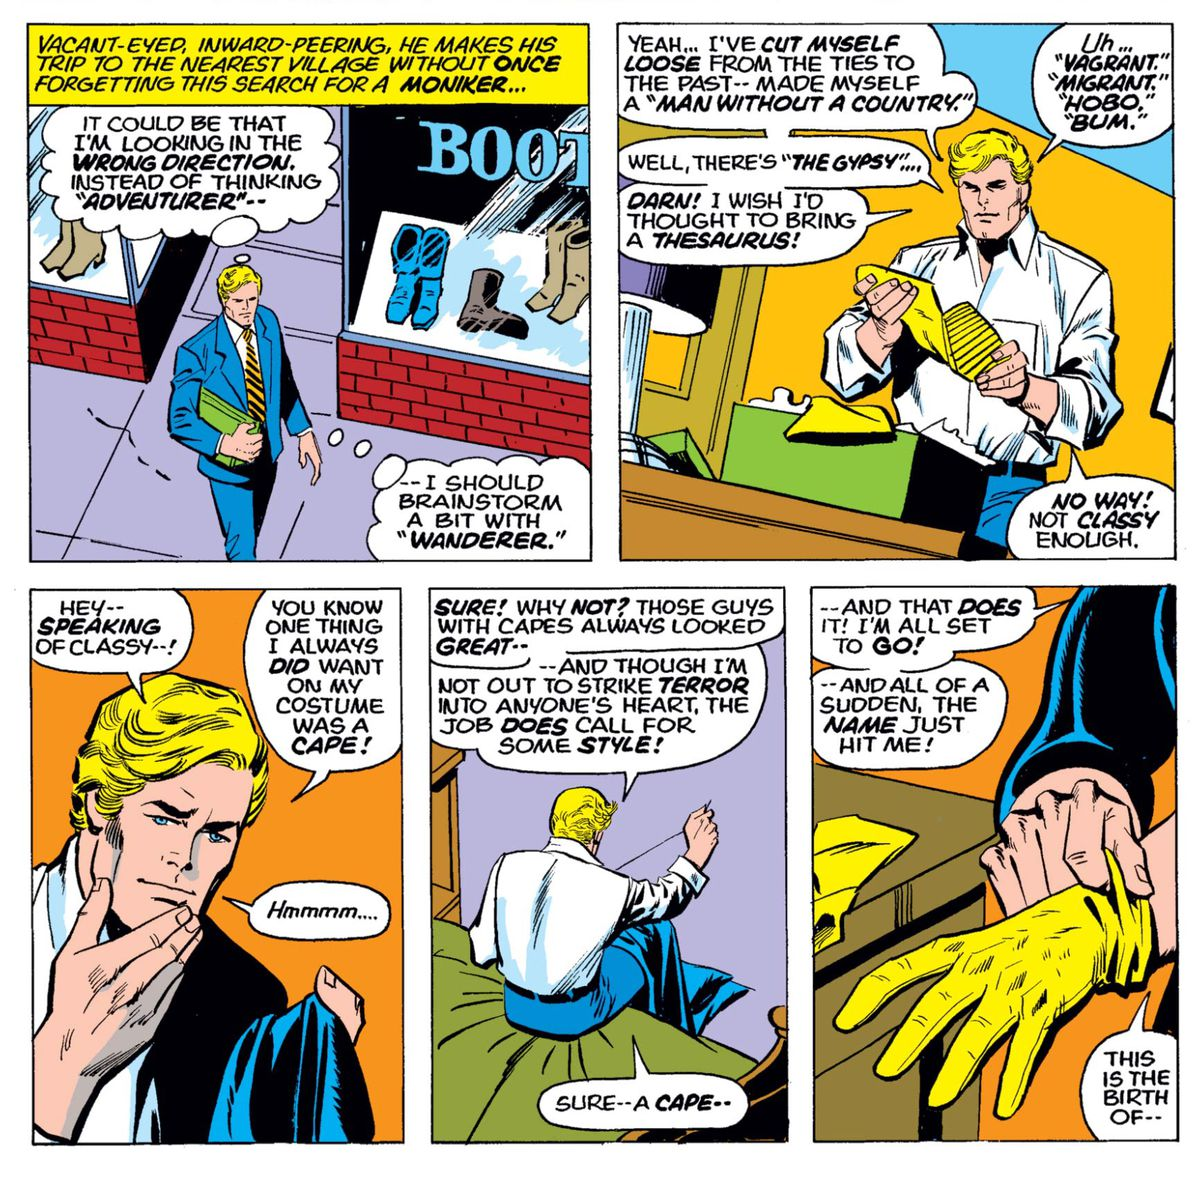 Steve Rogers buys some gloves and boots, and finishes sewing his new costume, in Captain America #180, Marvel Comics (1974).